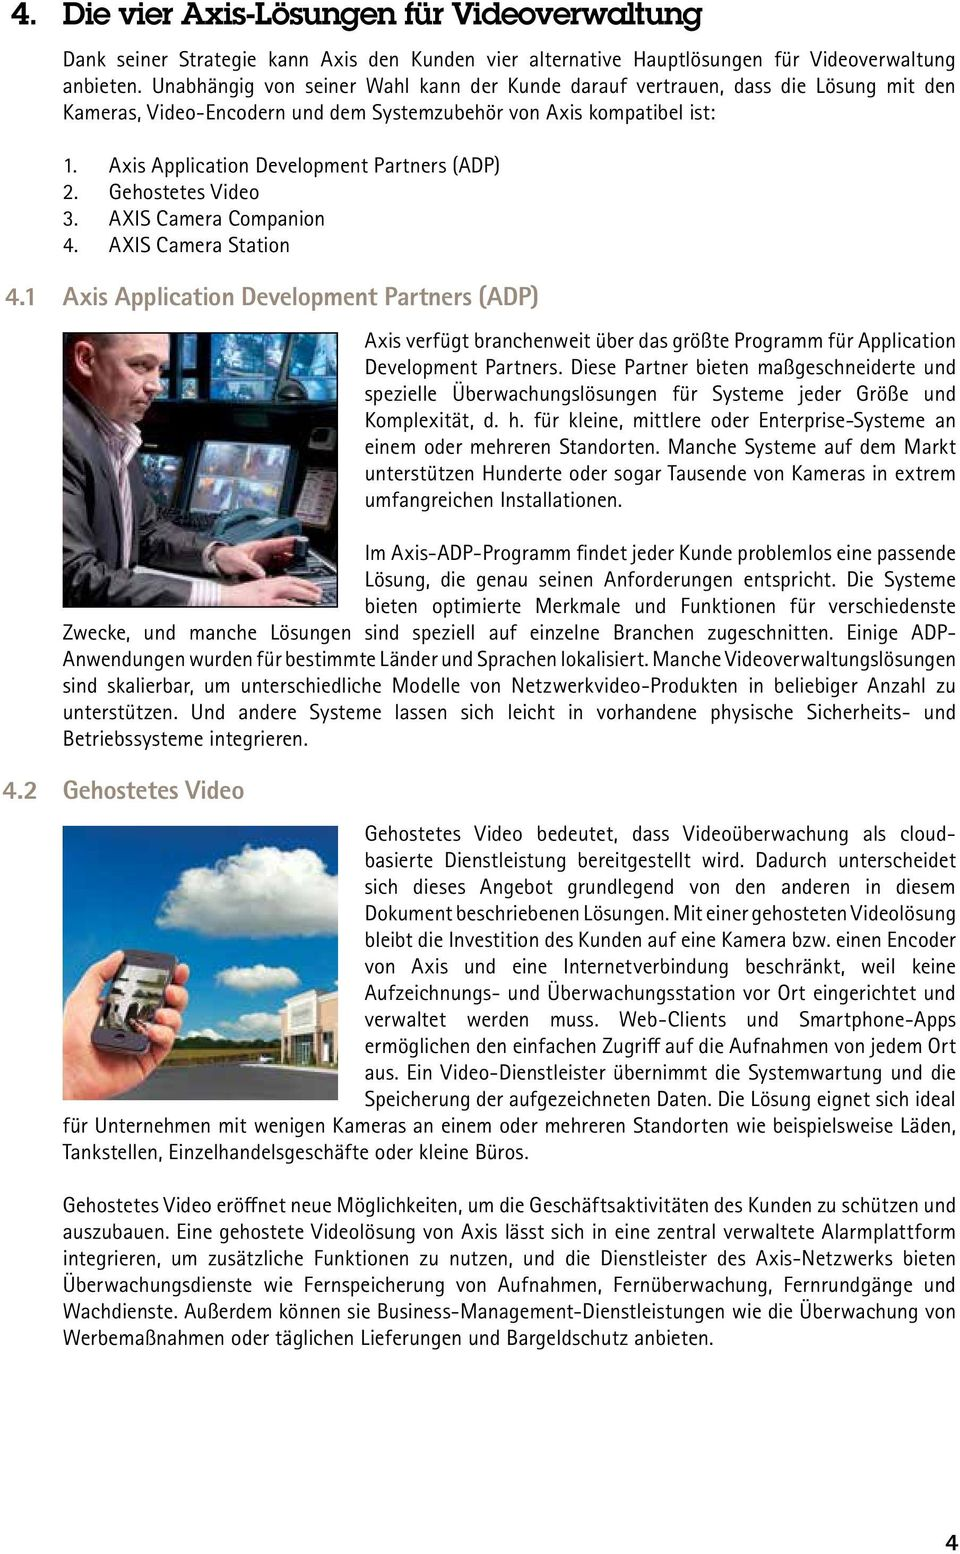 Axis Application Development Partners (ADP) 2. Gehostetes Video 3. AXIS Camera Companion 4. AXIS Camera Station 4.